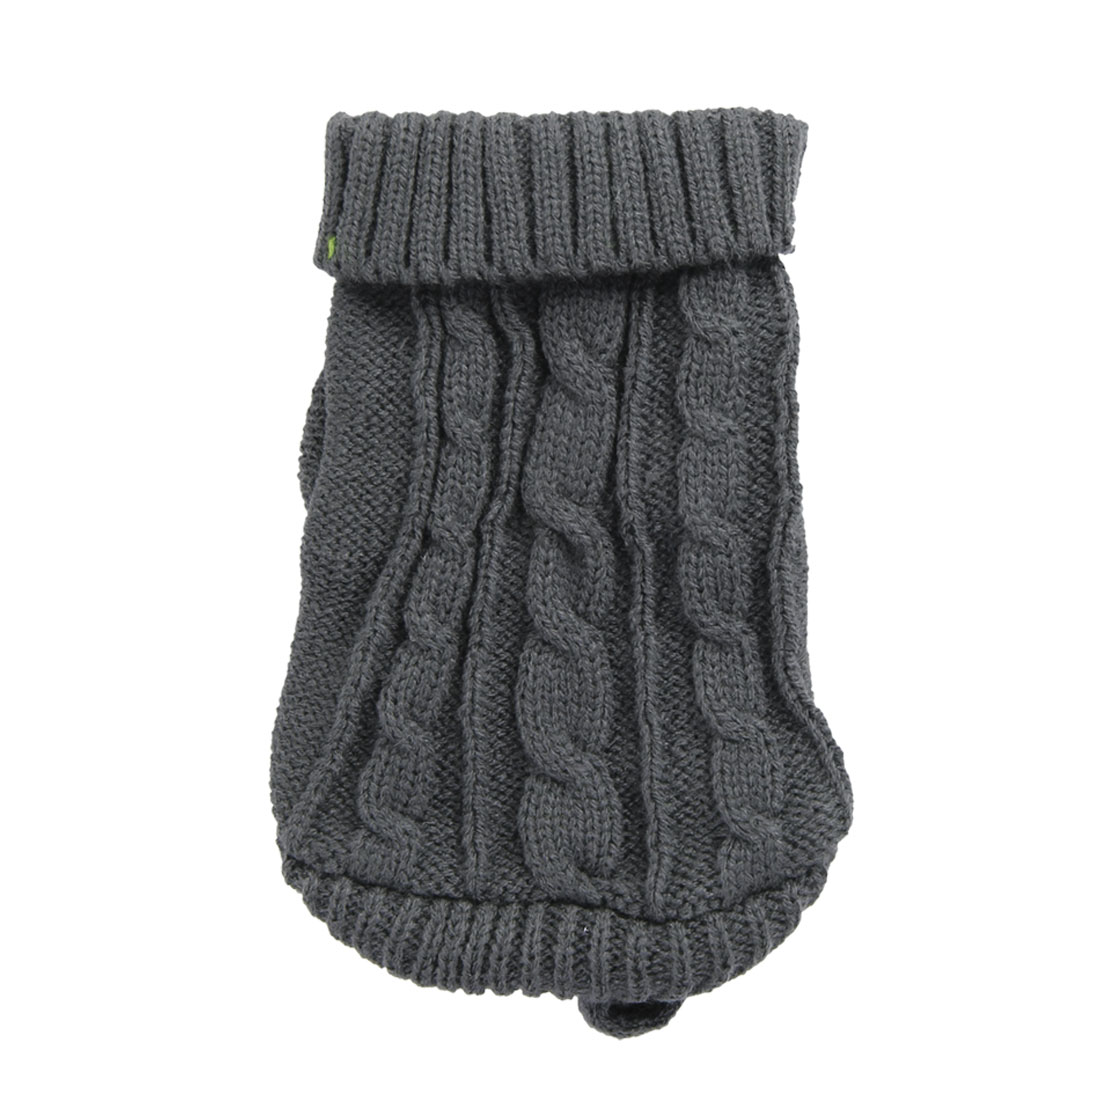 Pet Dog Chihuahua Gray Twisted Knit Ribbed Cuff Knitwear Apparel Sweater Size 4